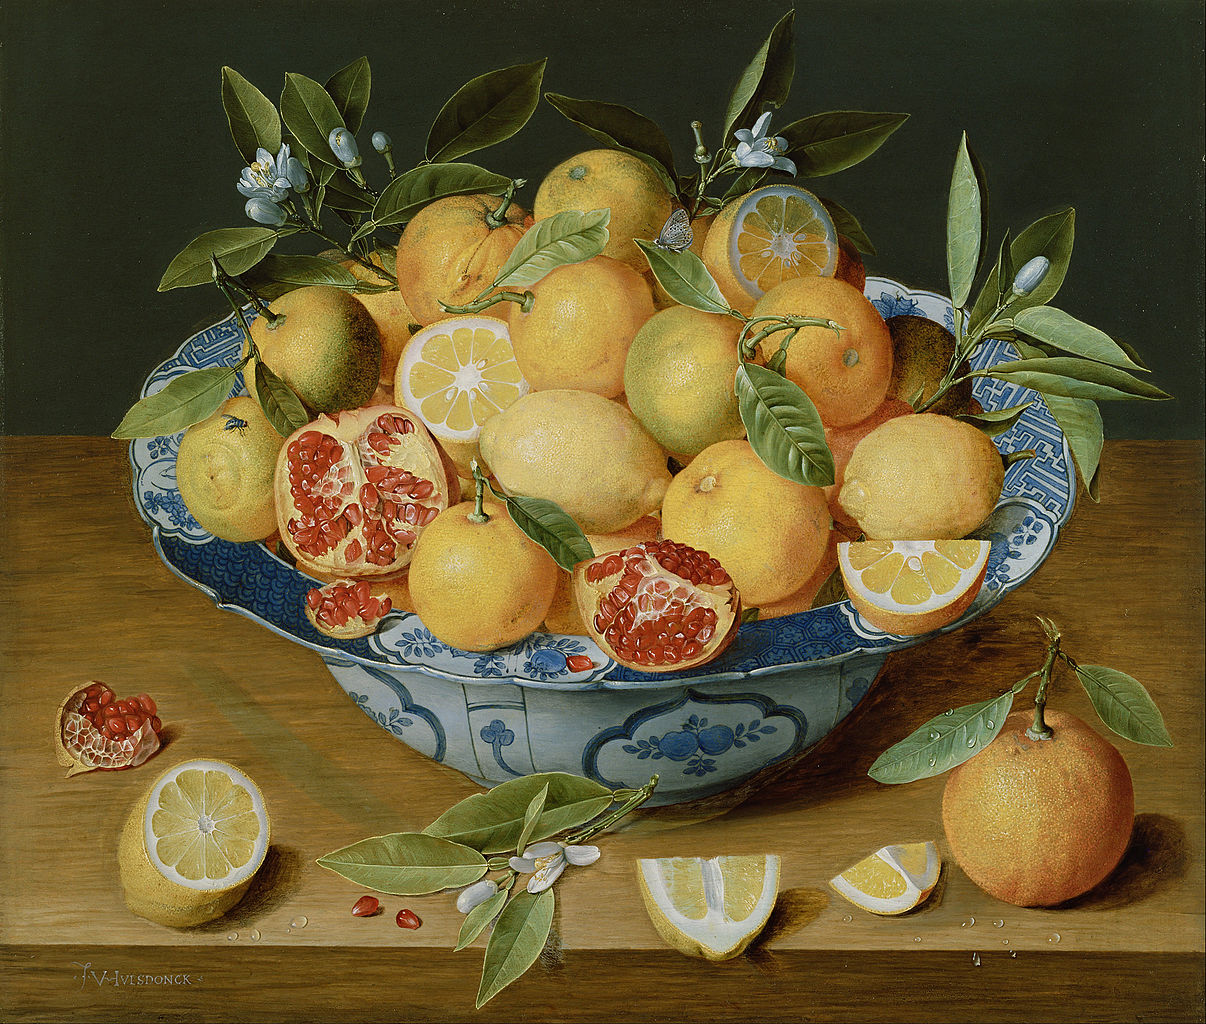 Flemish painting of a bowl filled with oranges, lemons, and pomegranates.